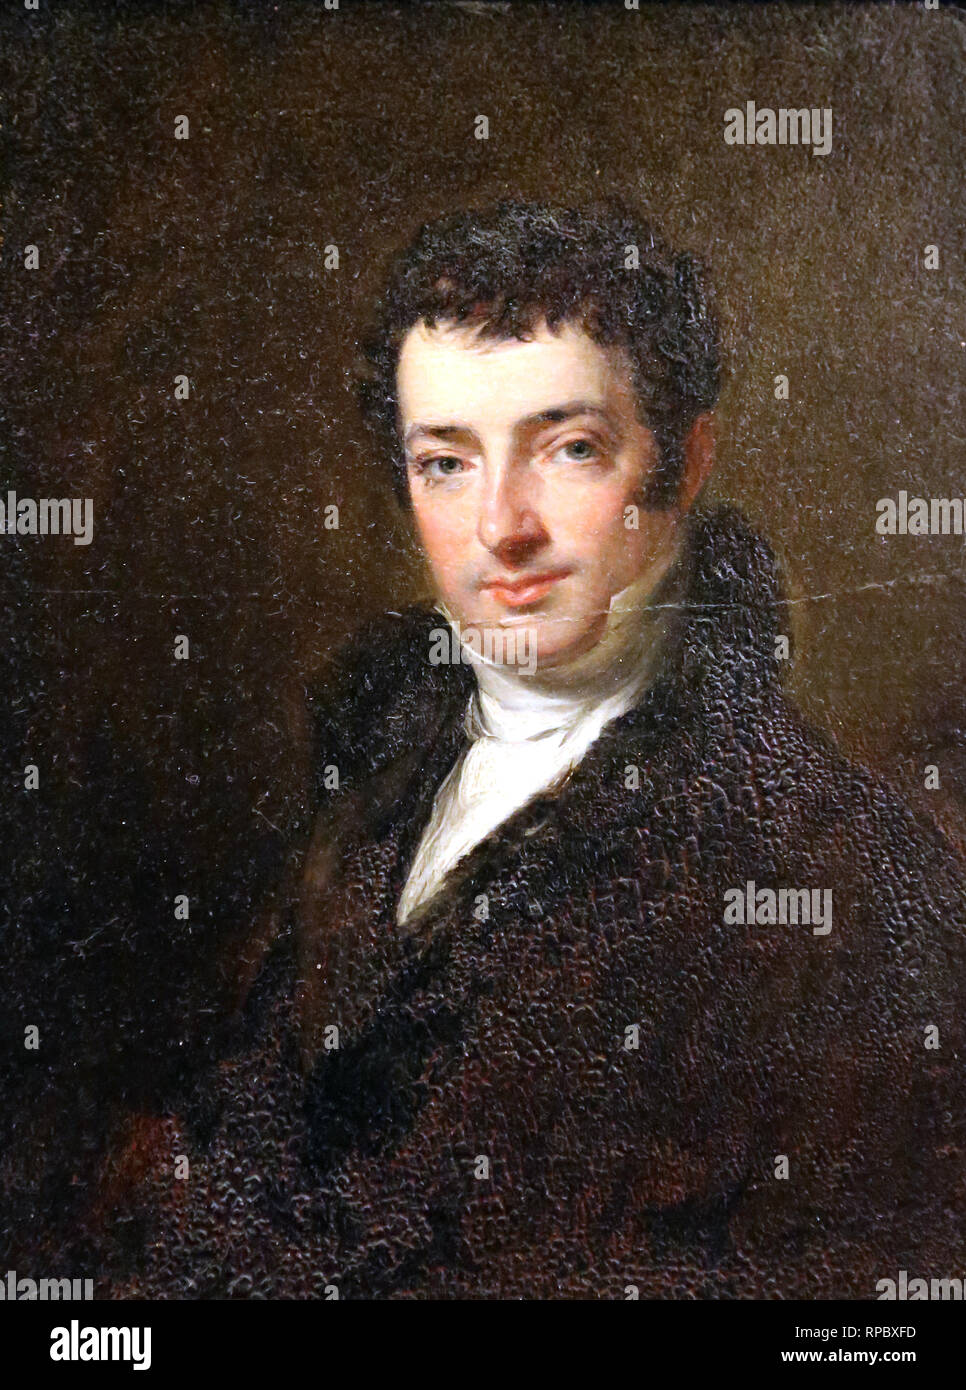 Washington Irving (1783-1859). American writer. Portrait by Charles Robert Leslie (1794-1854). Oil on canvas, 1820. - Stock Image